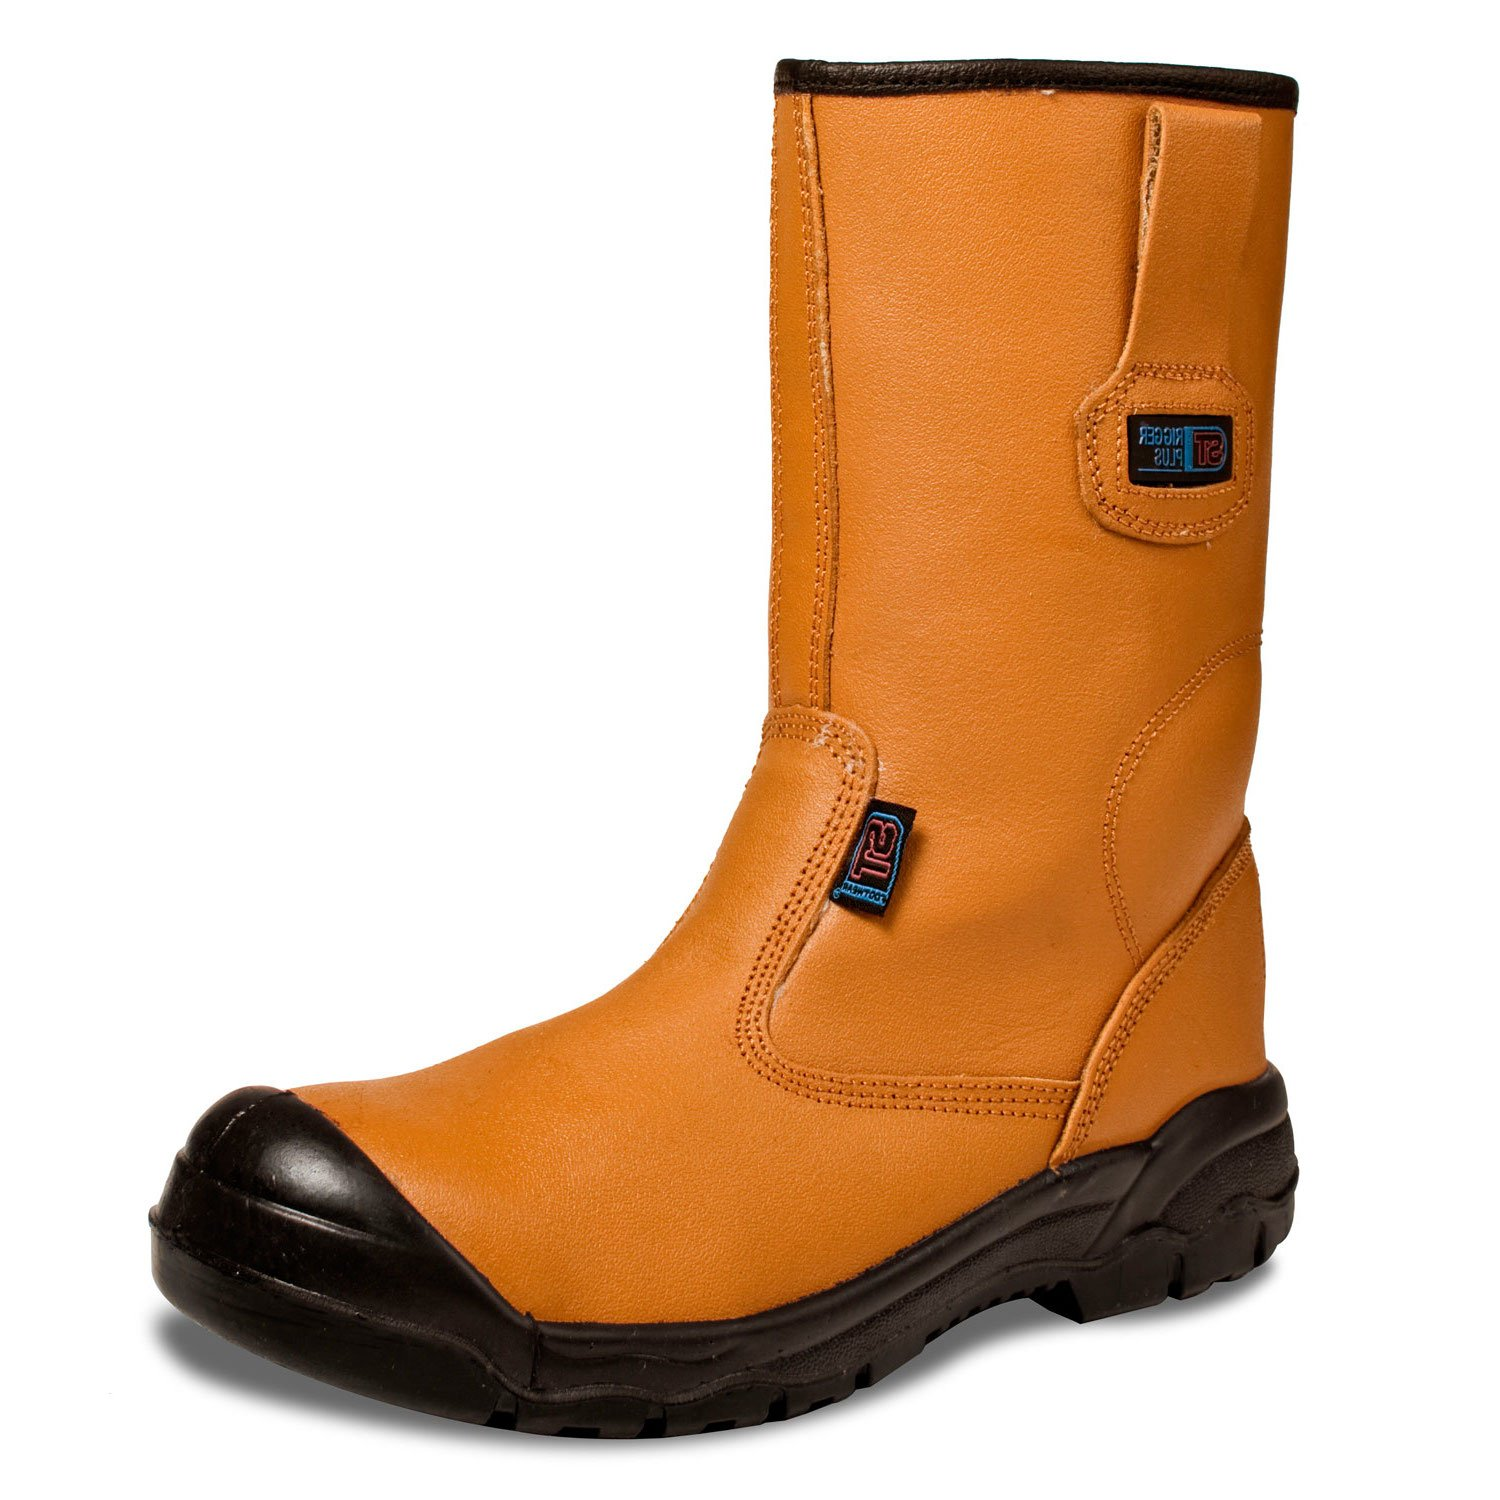 TAN LINED SAFETY RIGGER BOOTS WORK STEEL TOE CAP OIL RESISTANT SIZES 5 TO 13